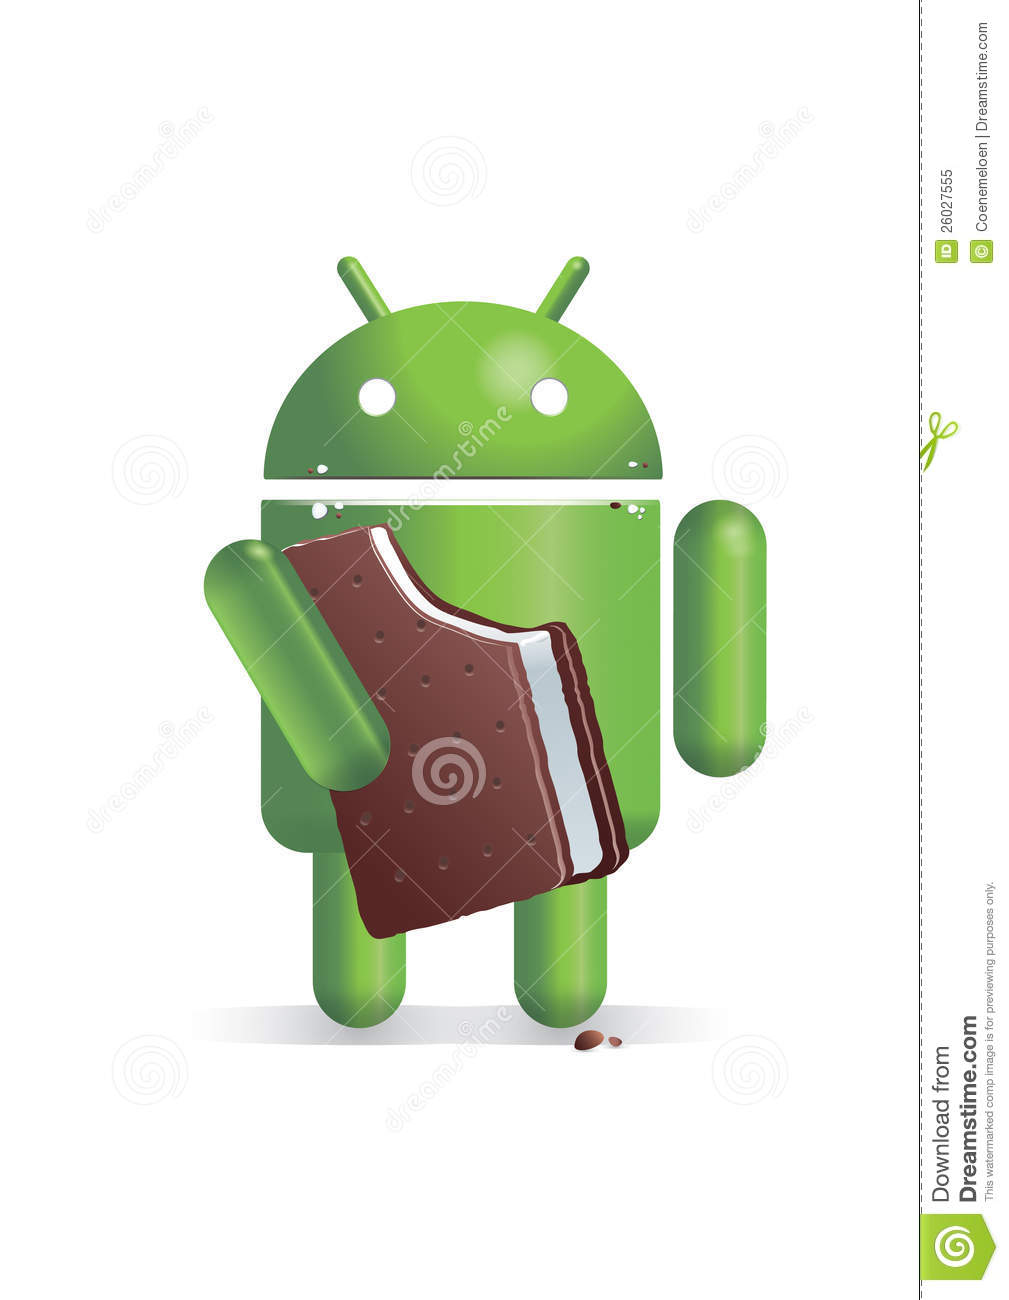 Android Users Are Not Ice-Cream Eaters